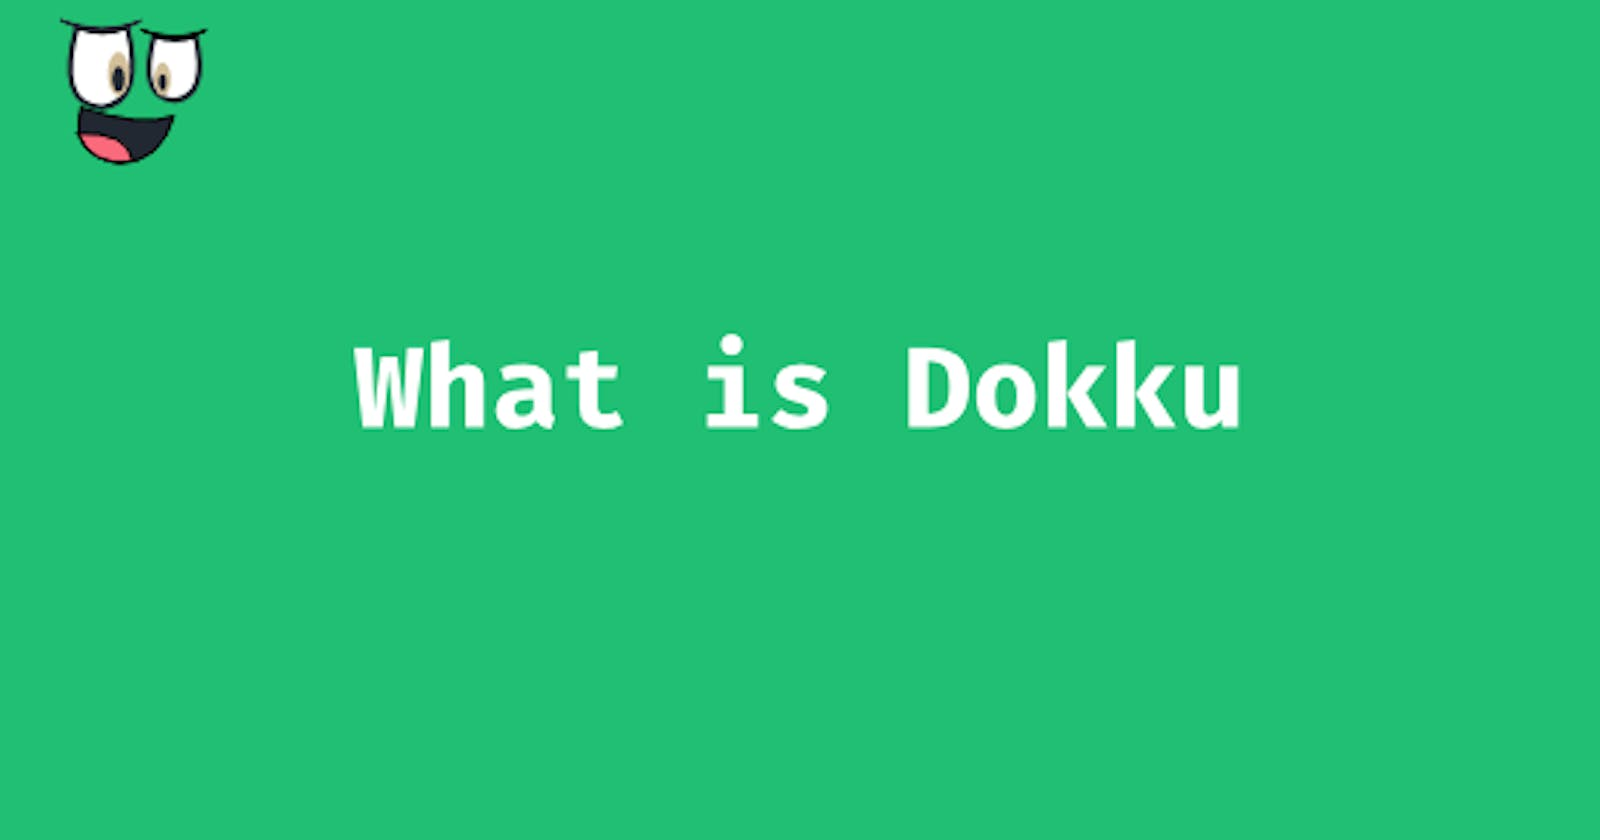 What is Dokku